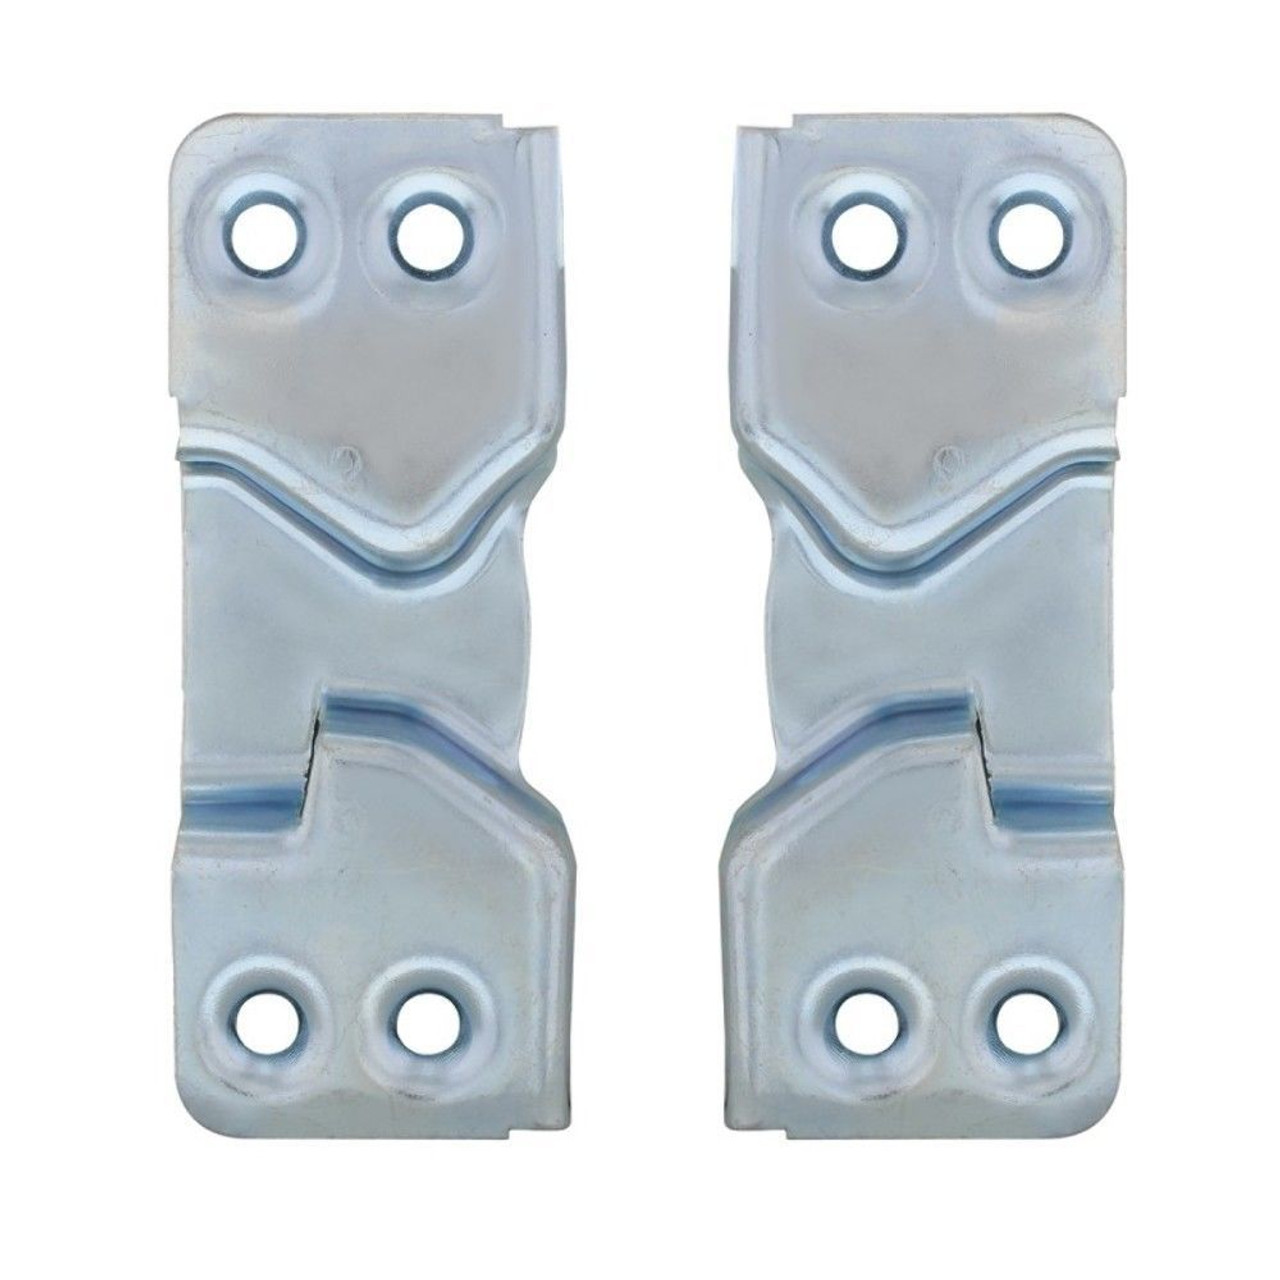 Door Latch Striker Plates, Compatible with Chevy/GMC Truck & Suburban 1947-1951